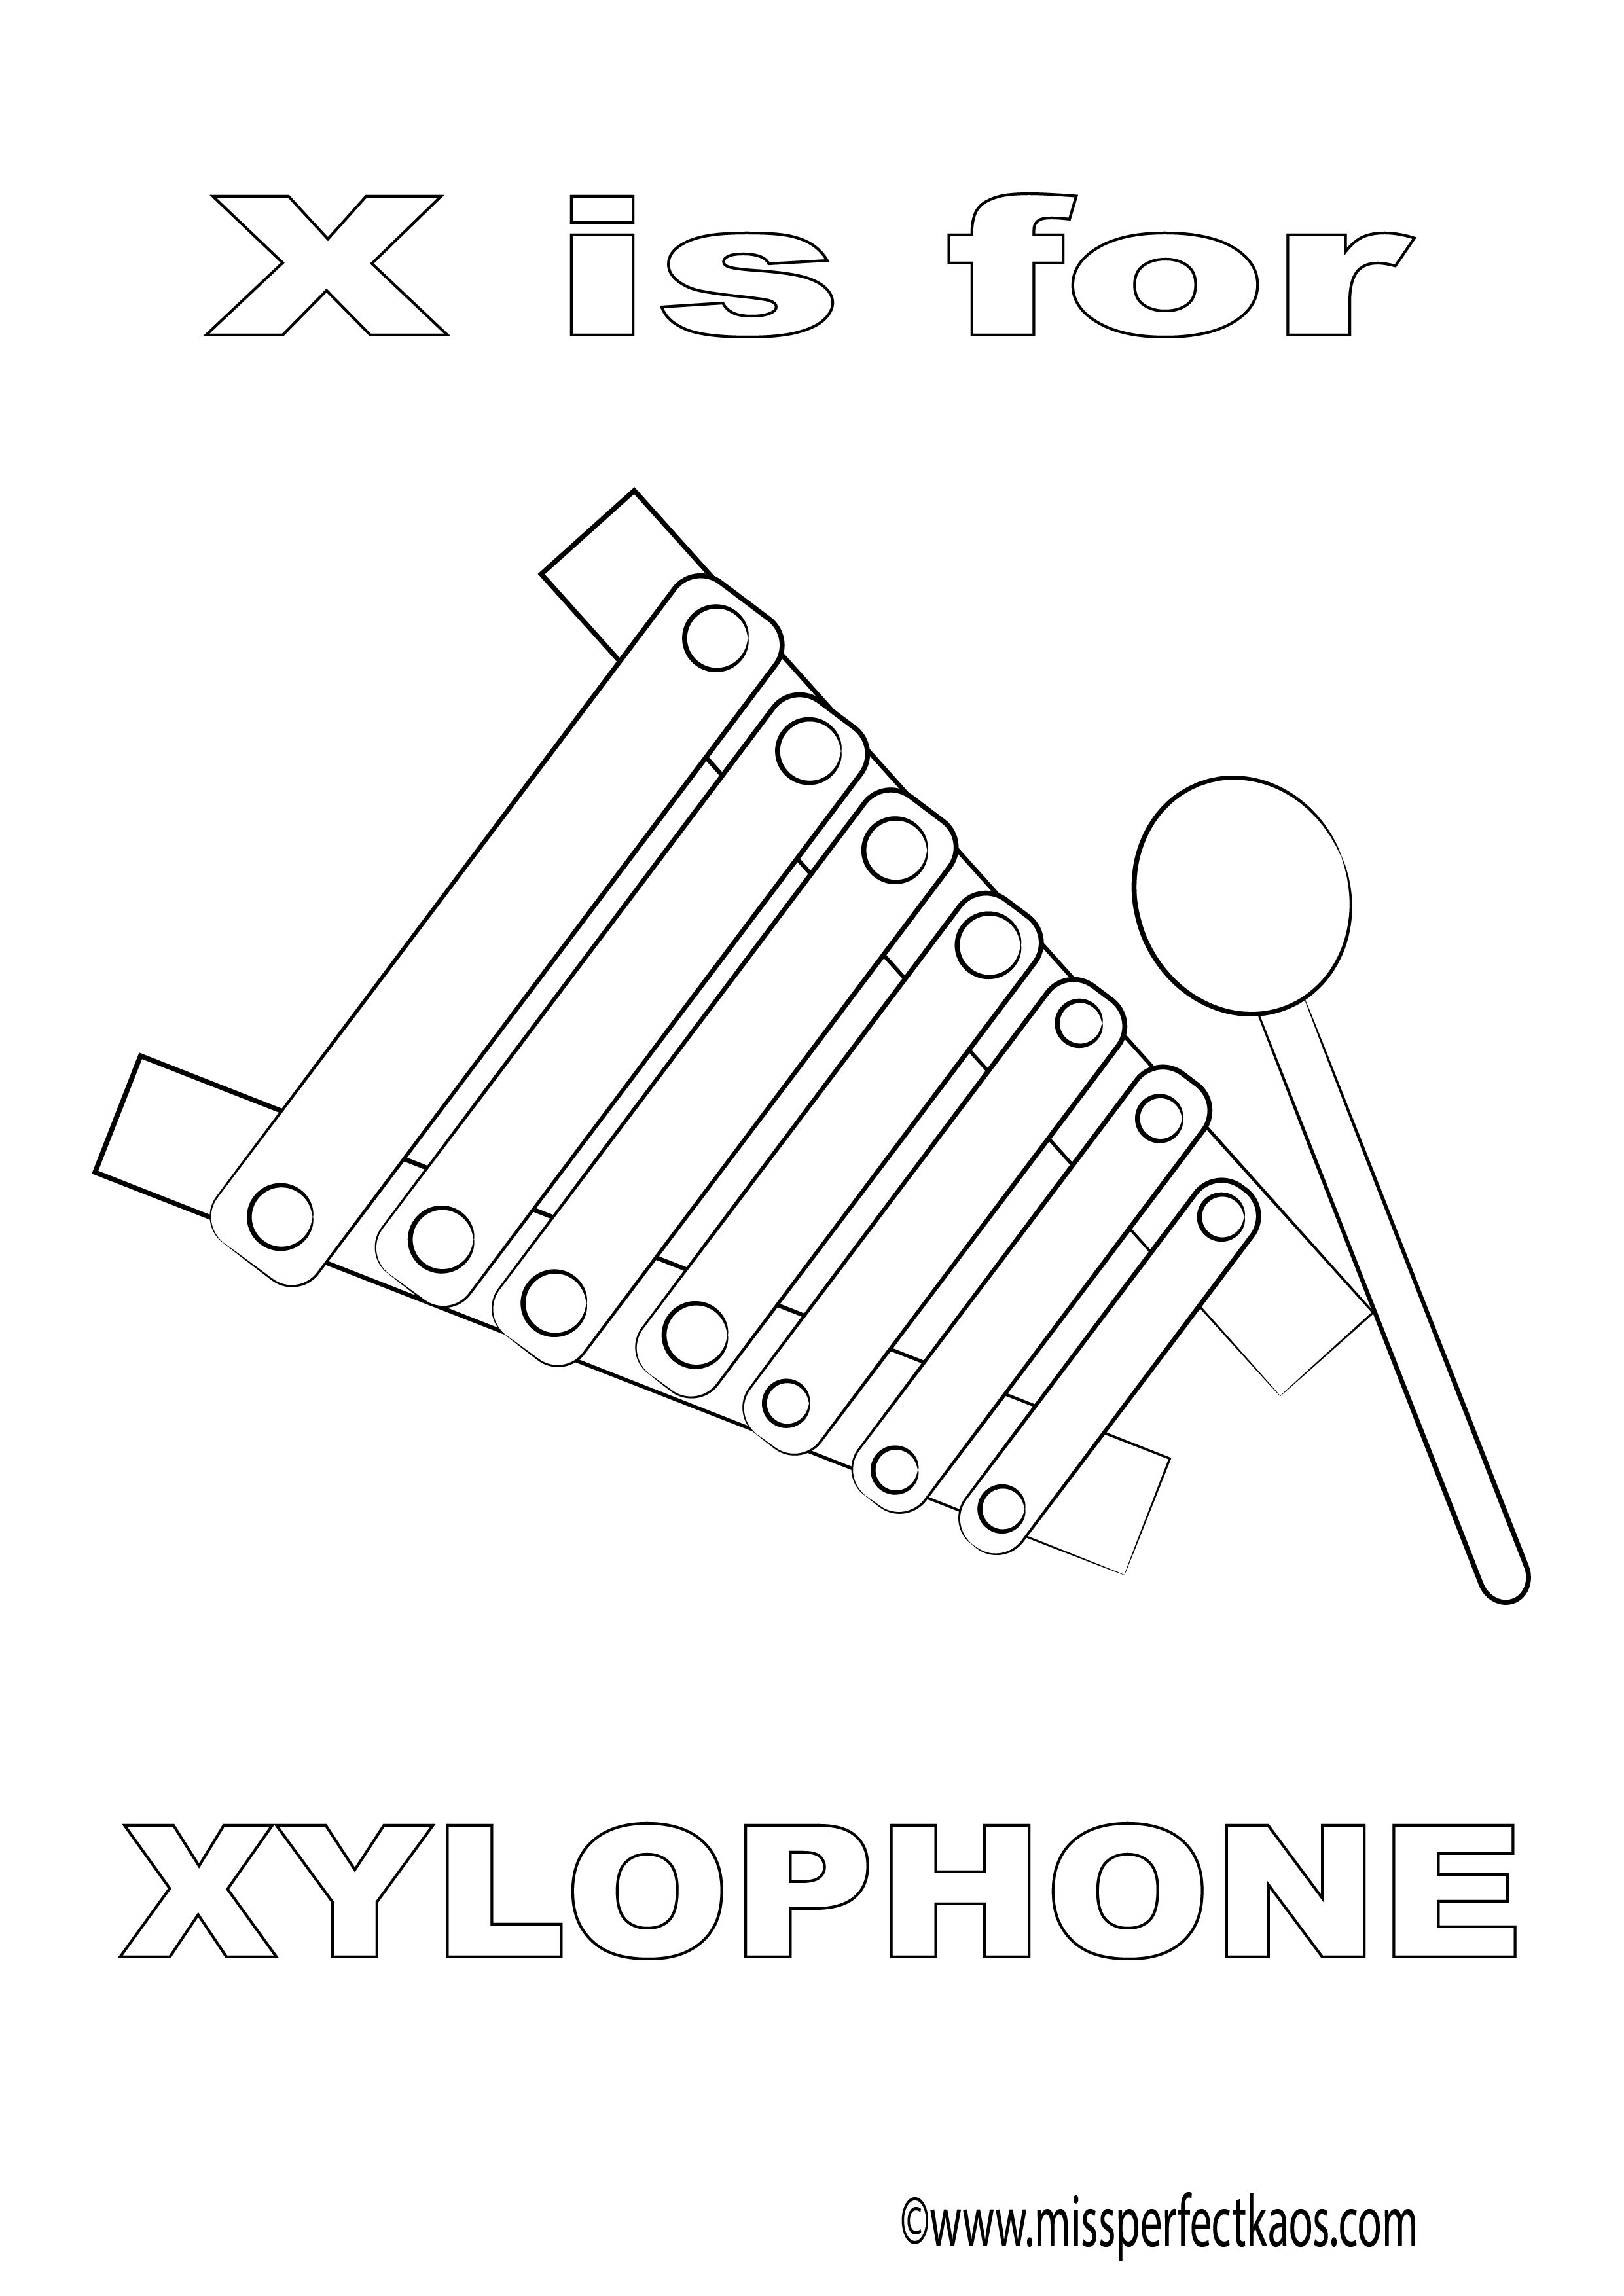 X Is For Xylophone Coloring Page For Kids Learn The Alphabet And Have Some Fun Free To Download And Print Personal Use Only Artwork Hand Drawn By Me Visit